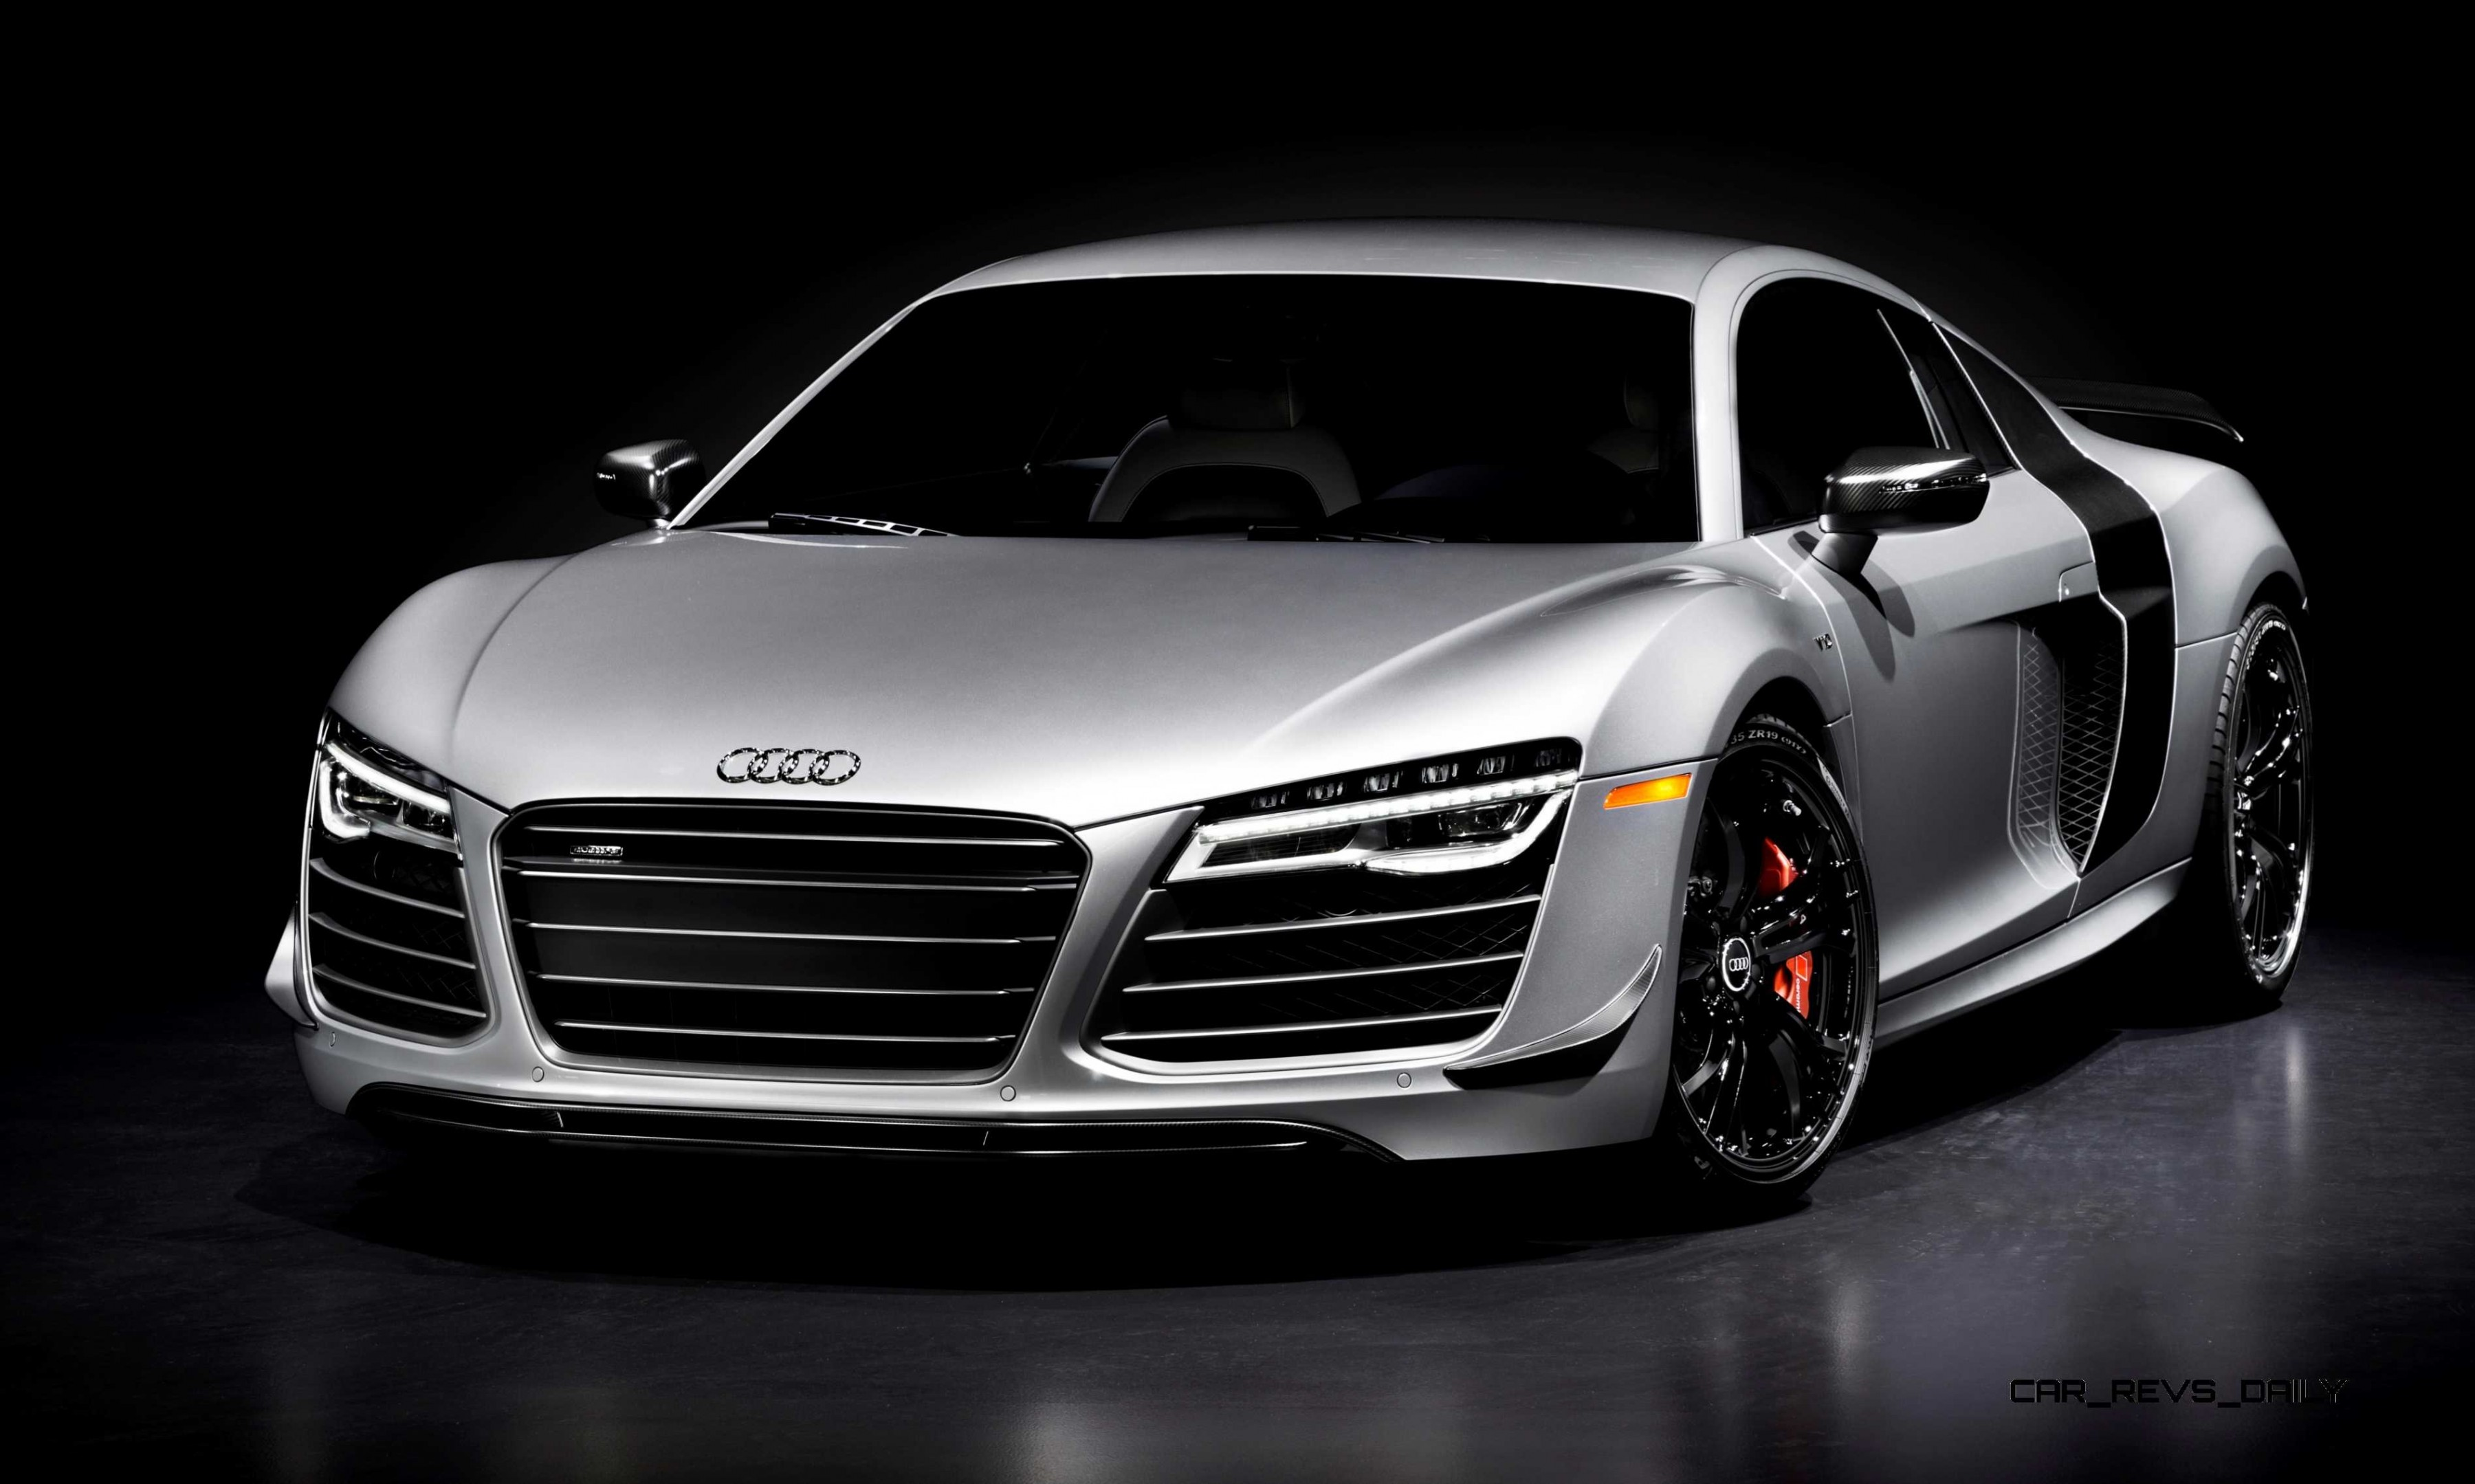 Audi R8 Lms >> 3.2s, 199MPH 2015 Audi R8 Competition Edition Revealed Ahead of LA Show